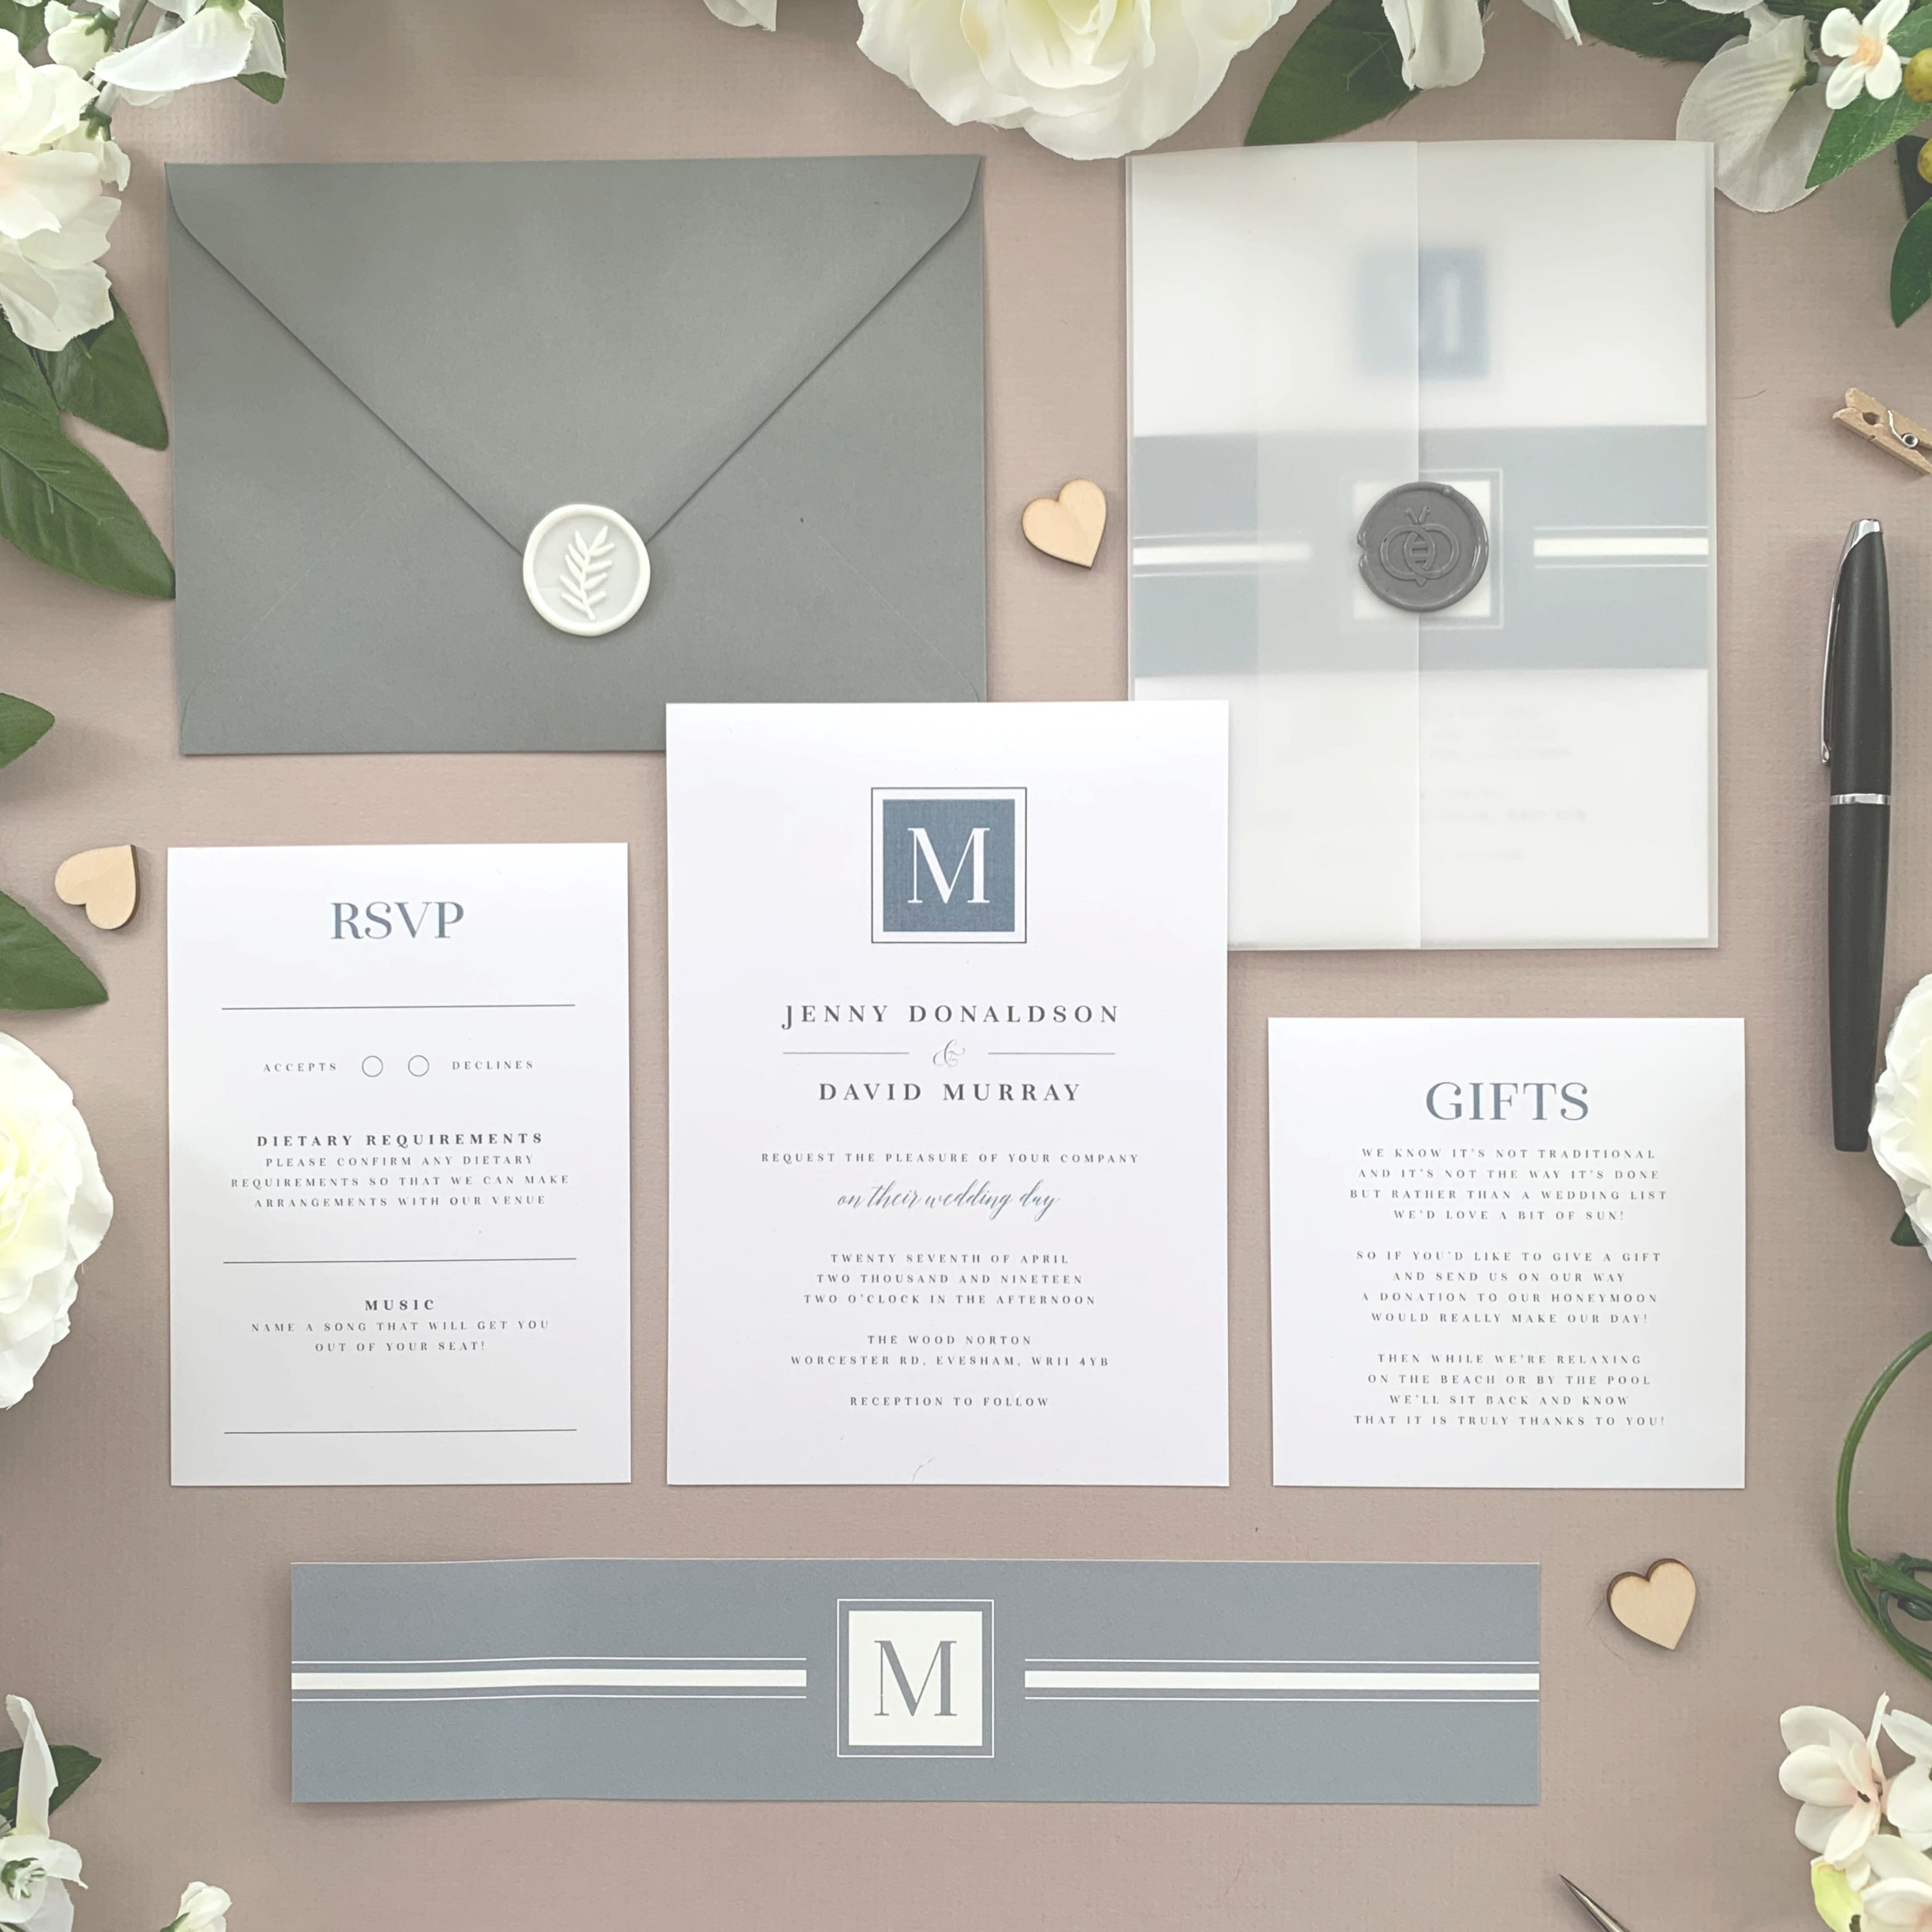 Aldgate - Our Aldgate collection features a classical and slightly formal styling, shown here in a muted blue / grey scheme but with a huge number of colours to combine to match your own style.The classic invitation suite is our most popular configuration and hugely versatile. If you don't have much to say or want to keep things simple you can even just order the invitation card on its own, which is an ideal option for evening guests.Most couples opt for a suite of items for day guests which can then be bound, with a choice of a paper belly band, vellum jacket, sticker or wax seal to keep multiple cards beautifully neat and together.Coloured envelopes are available, in addition to printing of guest names and envelopes to make the process even easier.